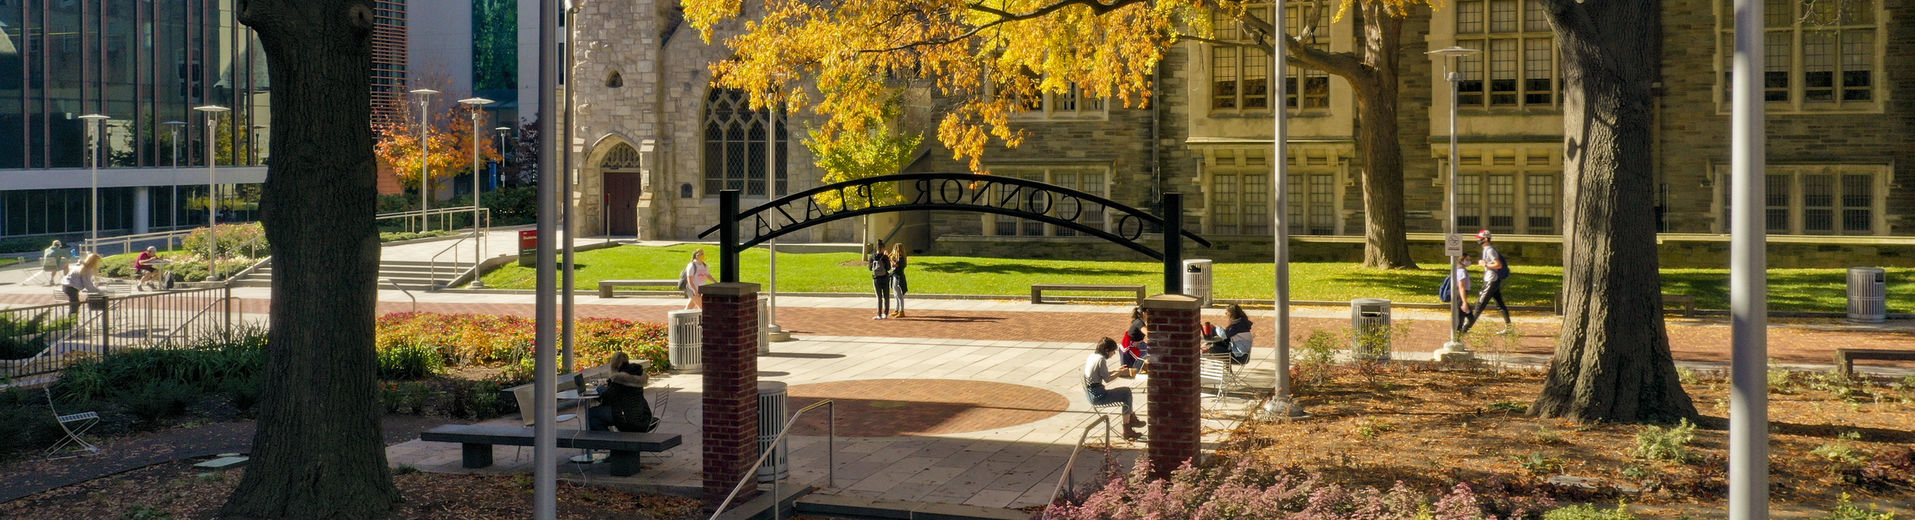 Students in O'Connor Plaza on a sunny fall day